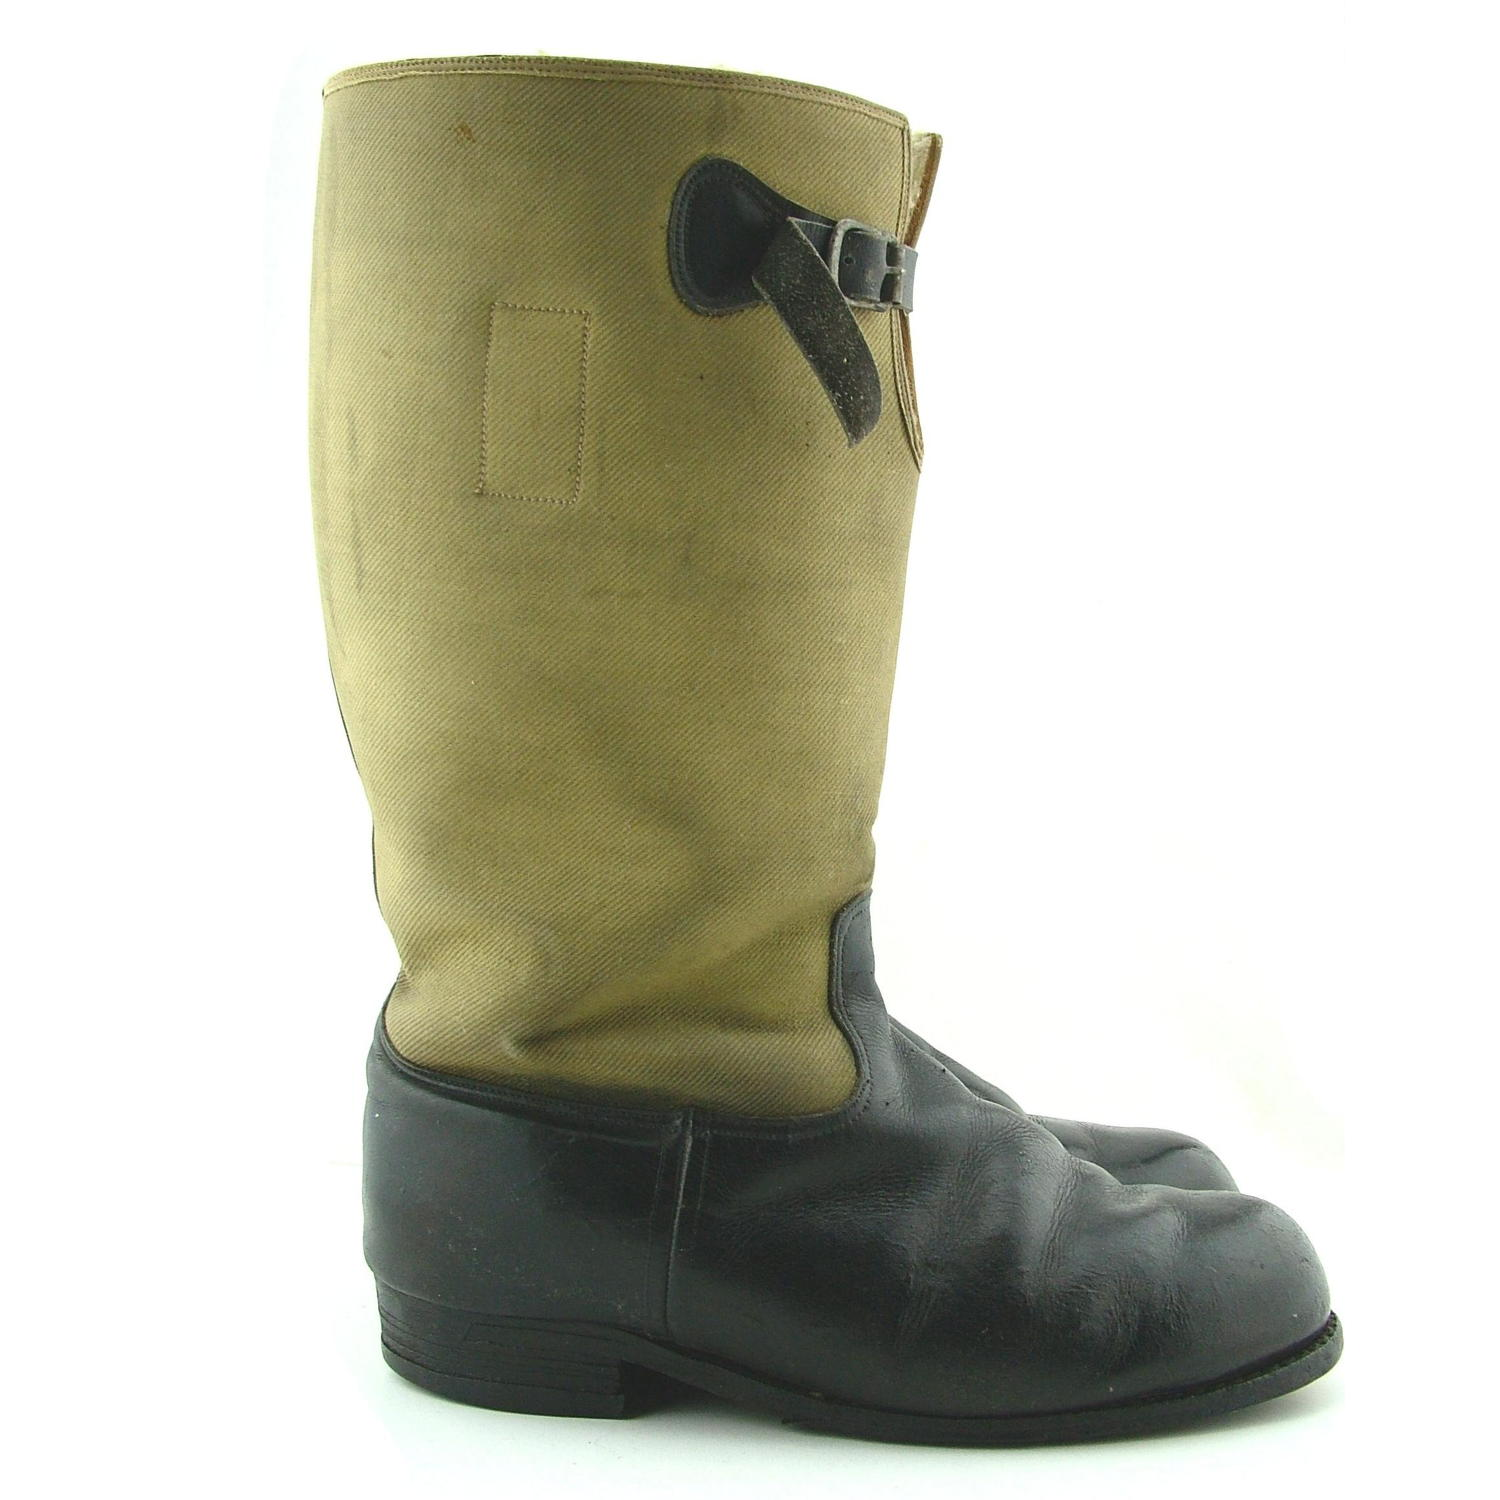 RAF 1939 pattern flying boots, S7